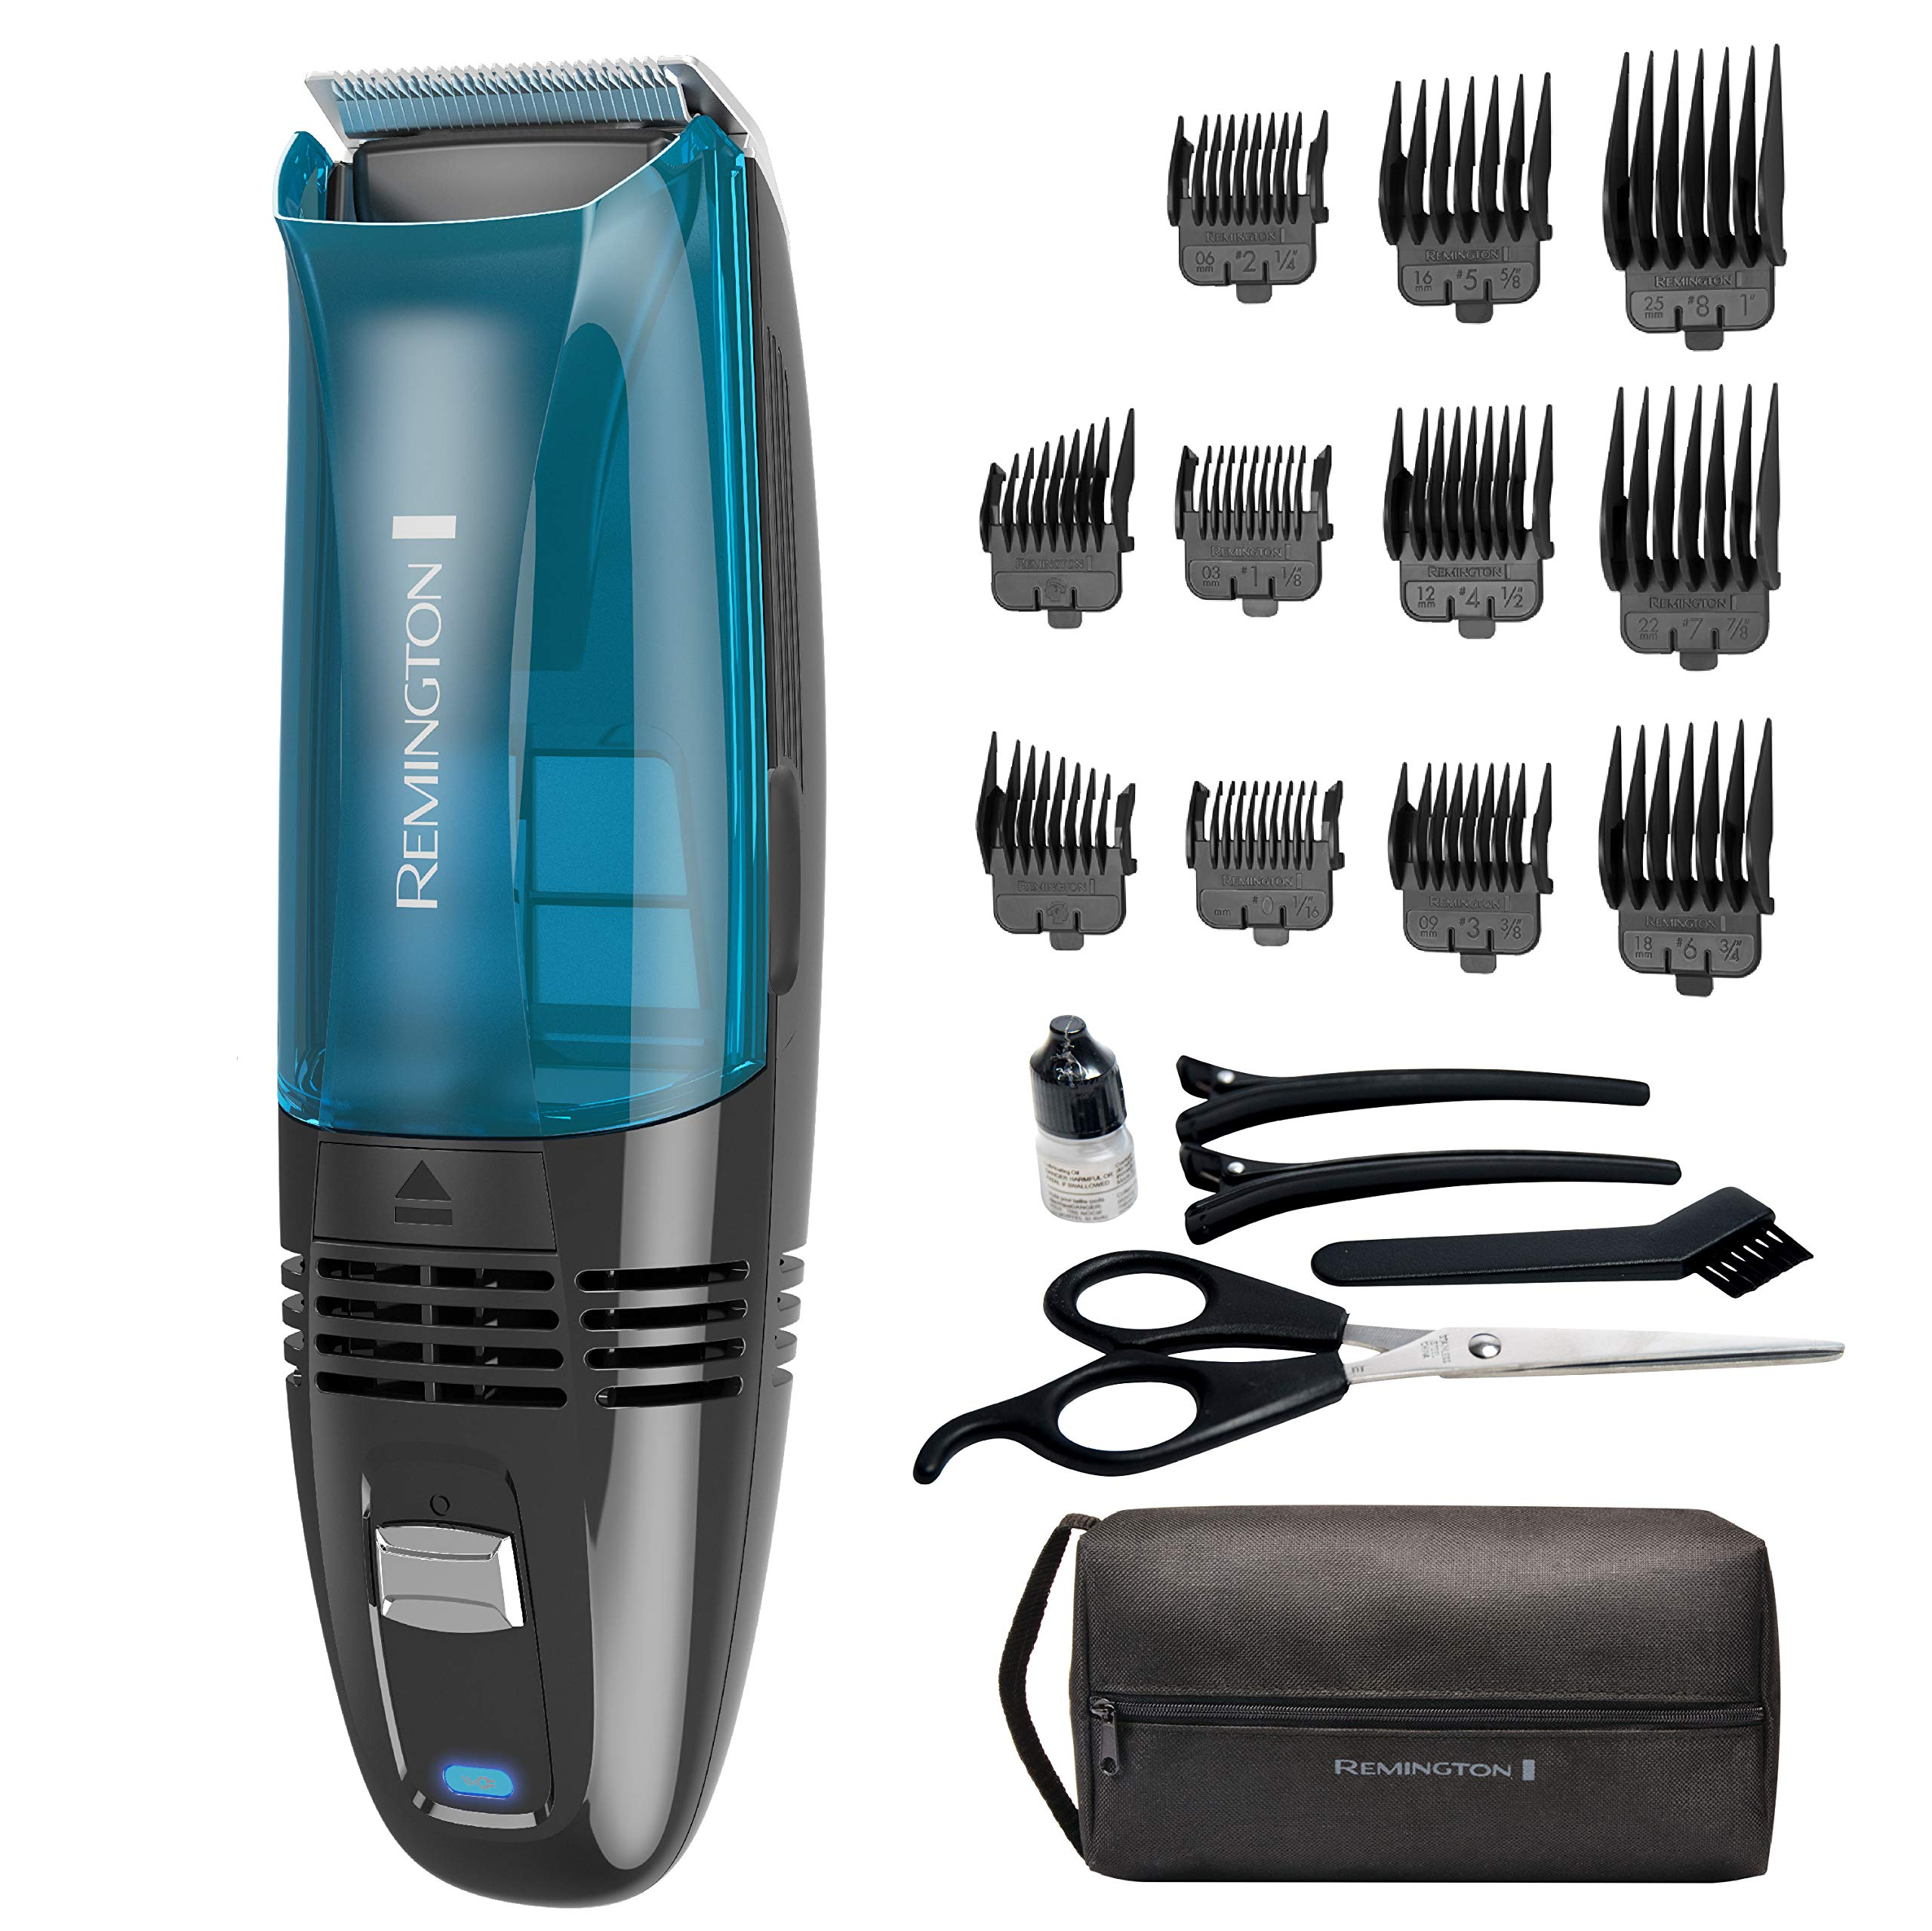 Remington Hc6550 Cordless Vacuum Haircut Kit, Vacuum Beard Trimmer, Hair Clippers for Men (18Piece) by Remington